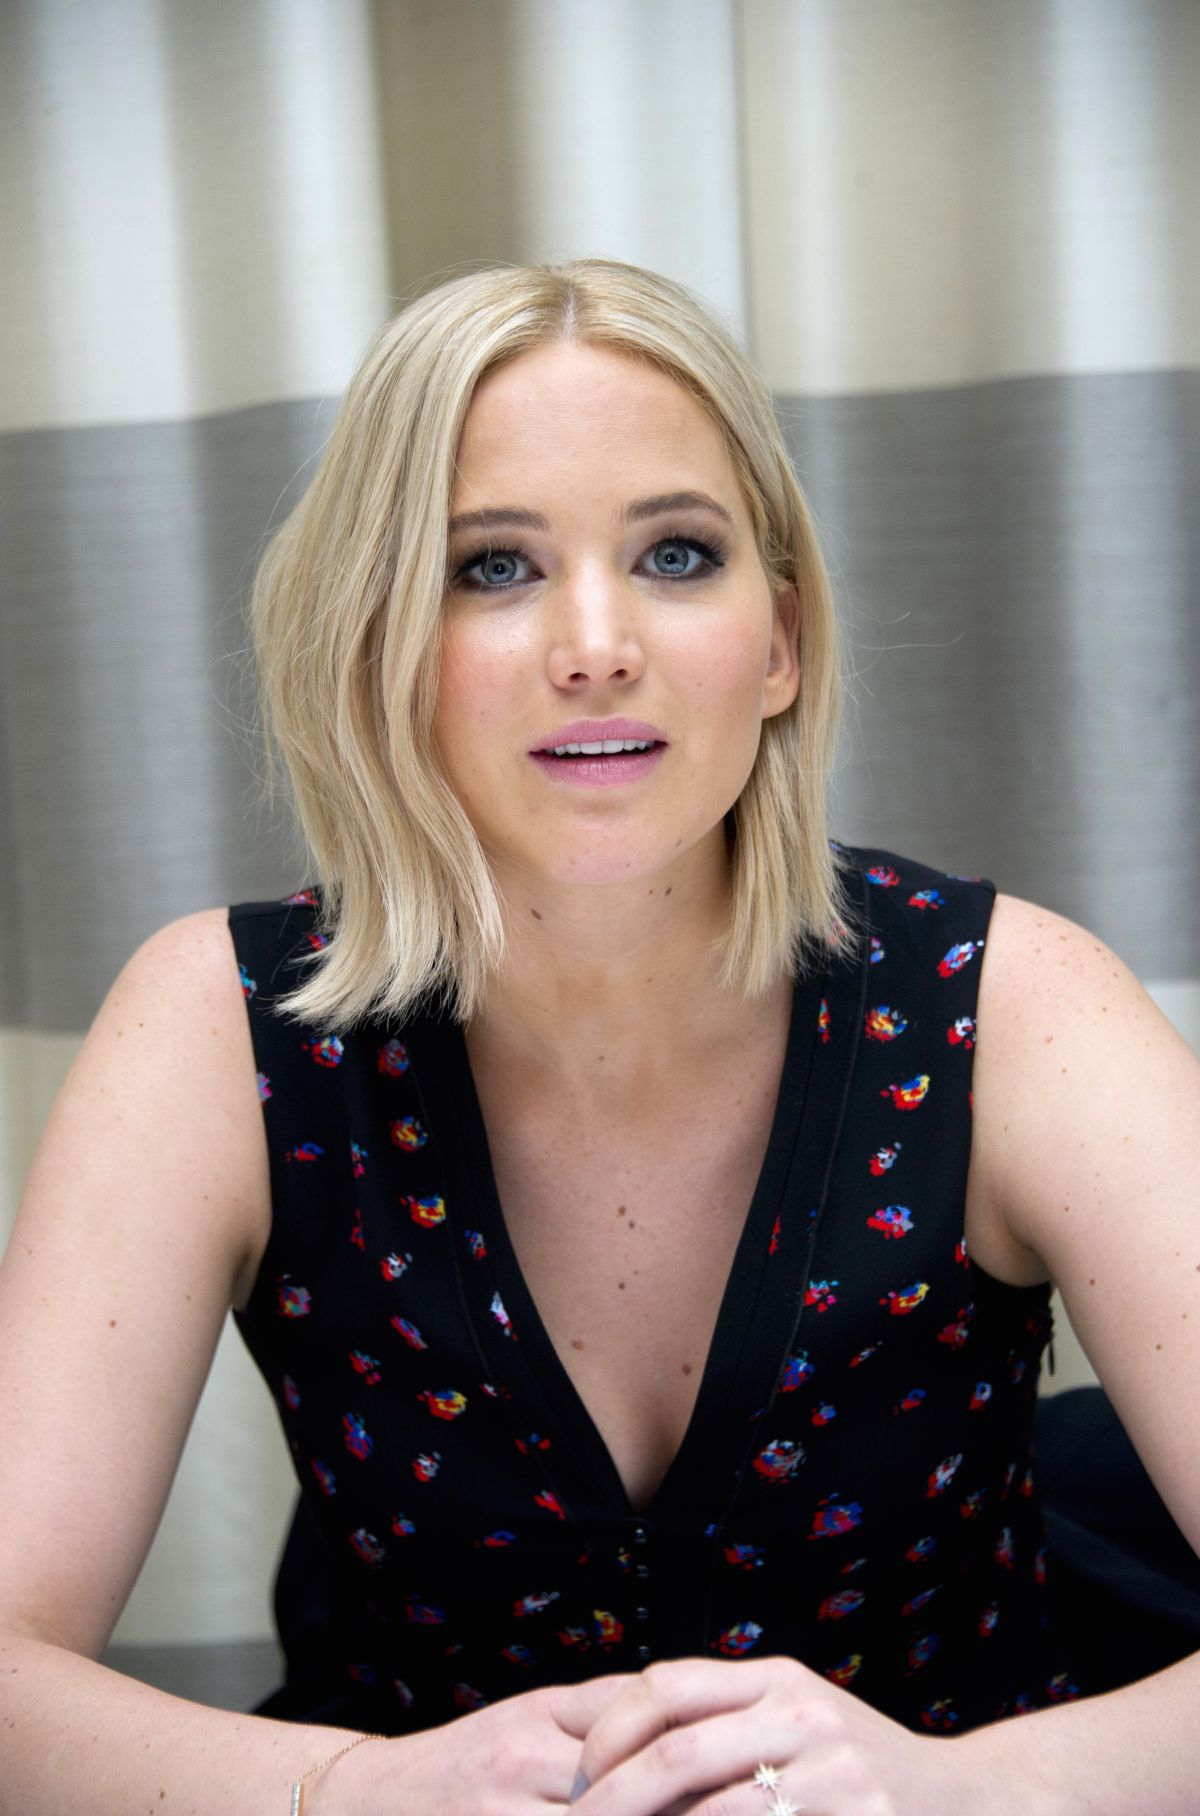 Jennifer Lawrence - Jennifer Lawrence Photo (39004182 ... Jennifer Lawrence